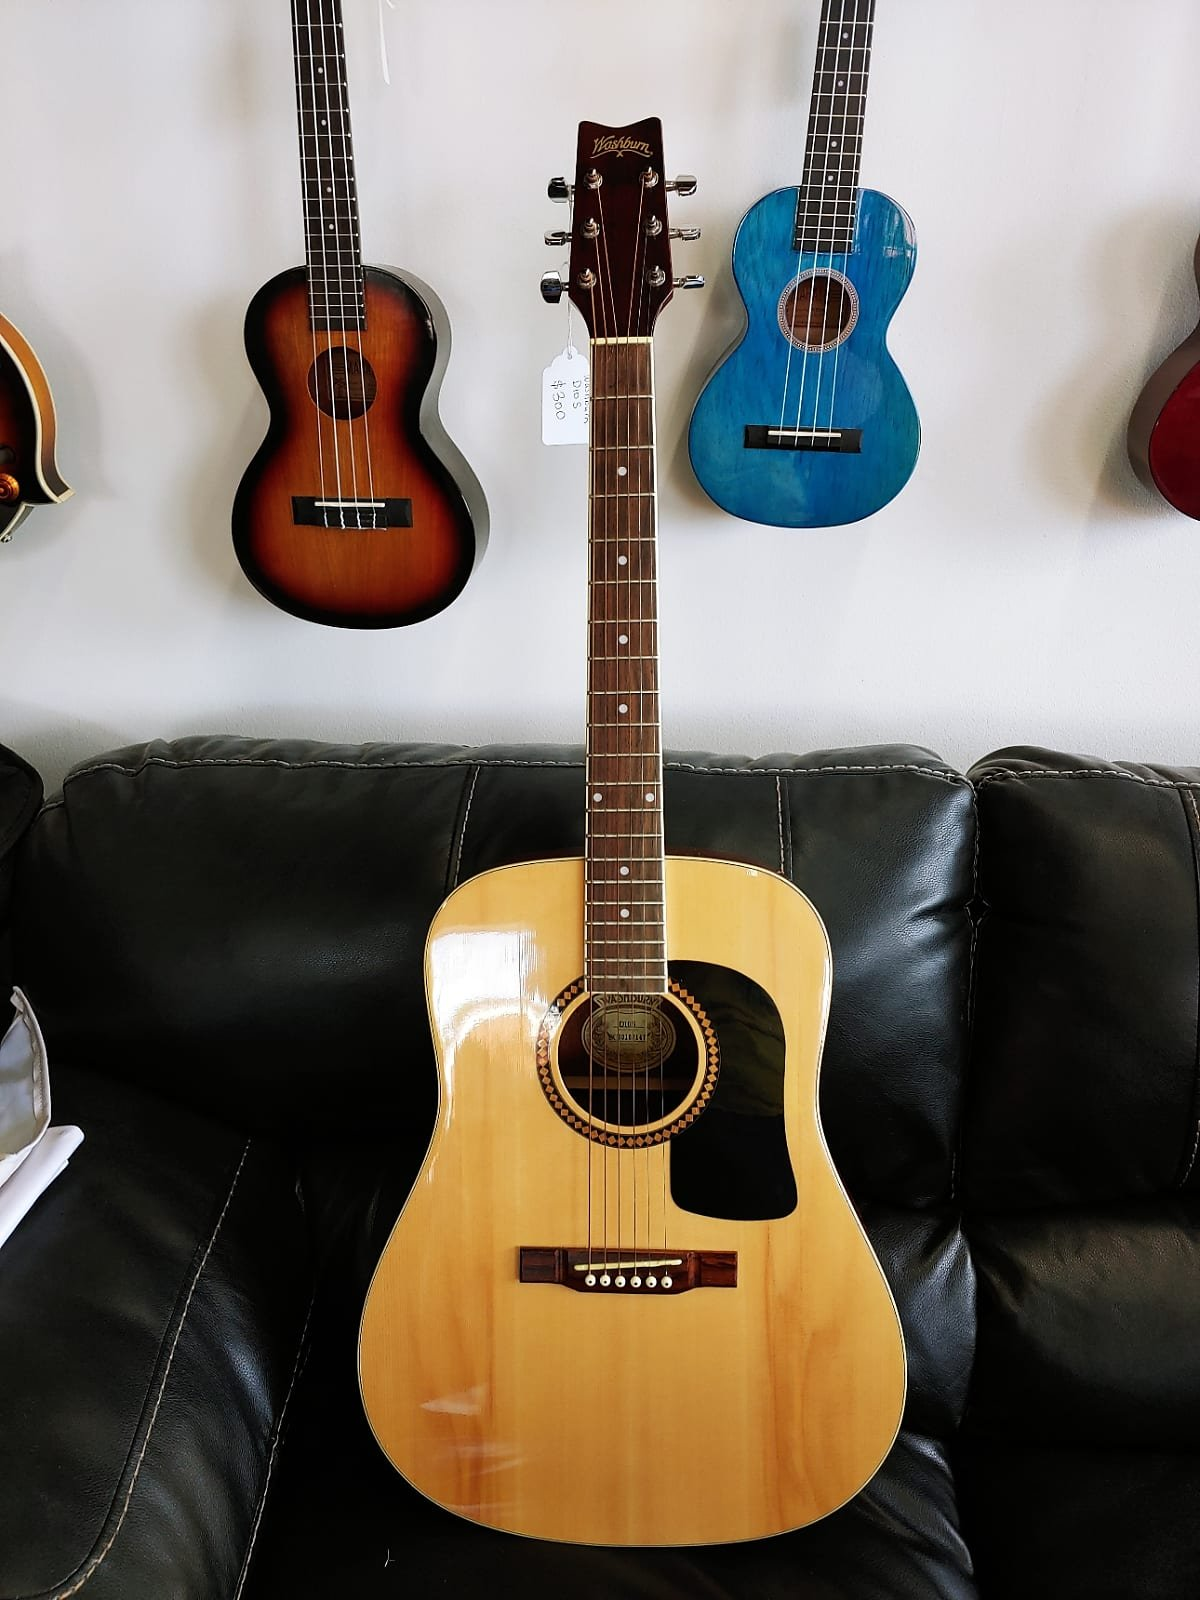 Washburn D10S Acoustic Guitar (used)